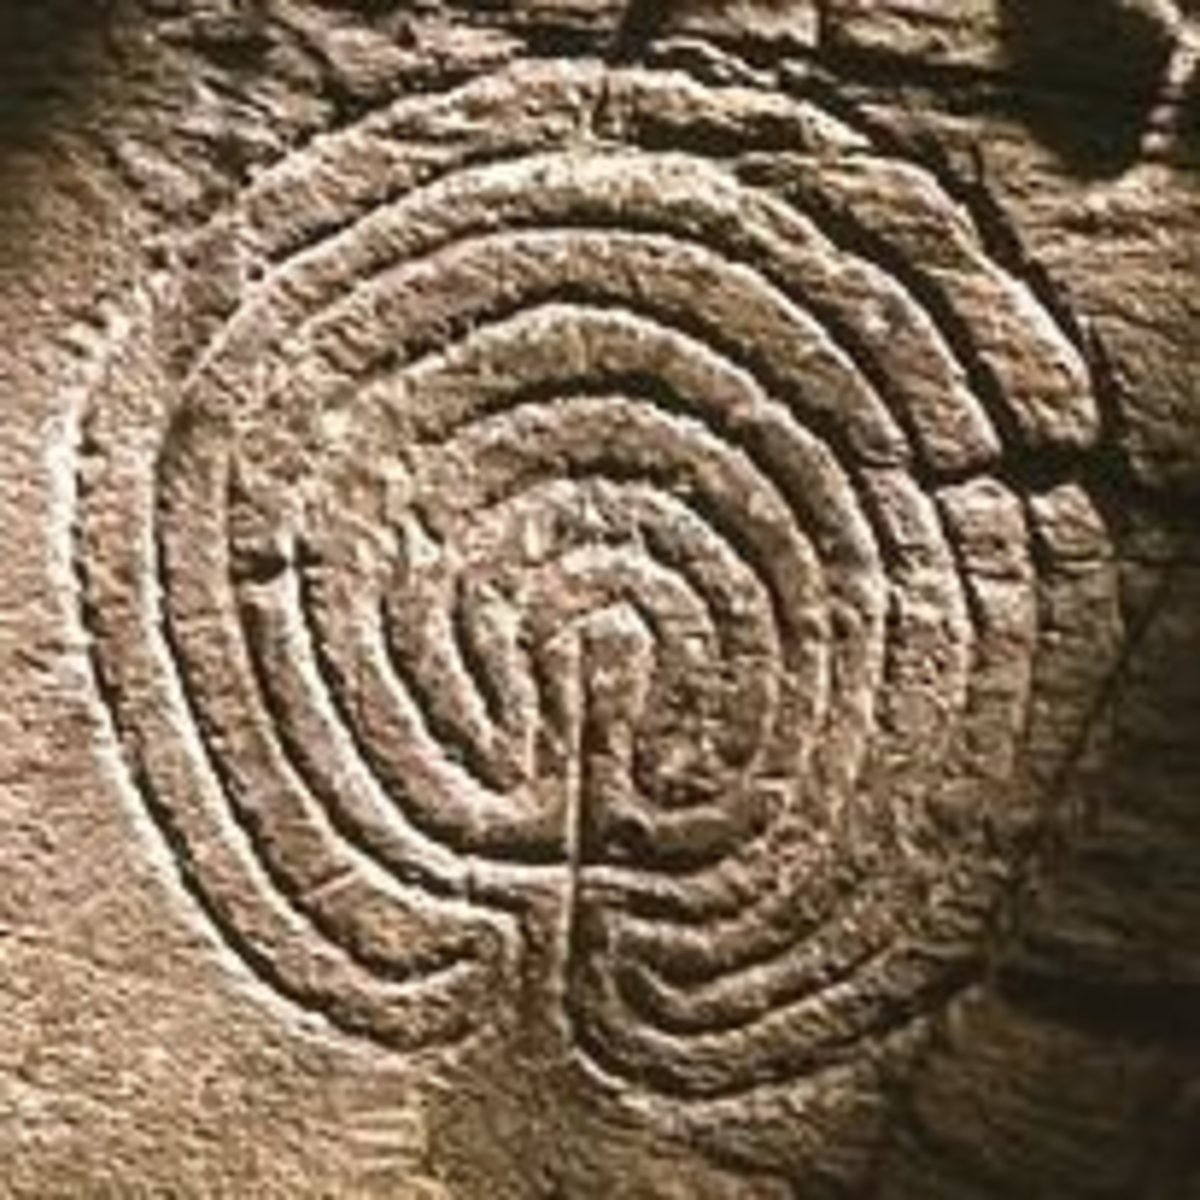 Labyrinth Symbols and Meaning